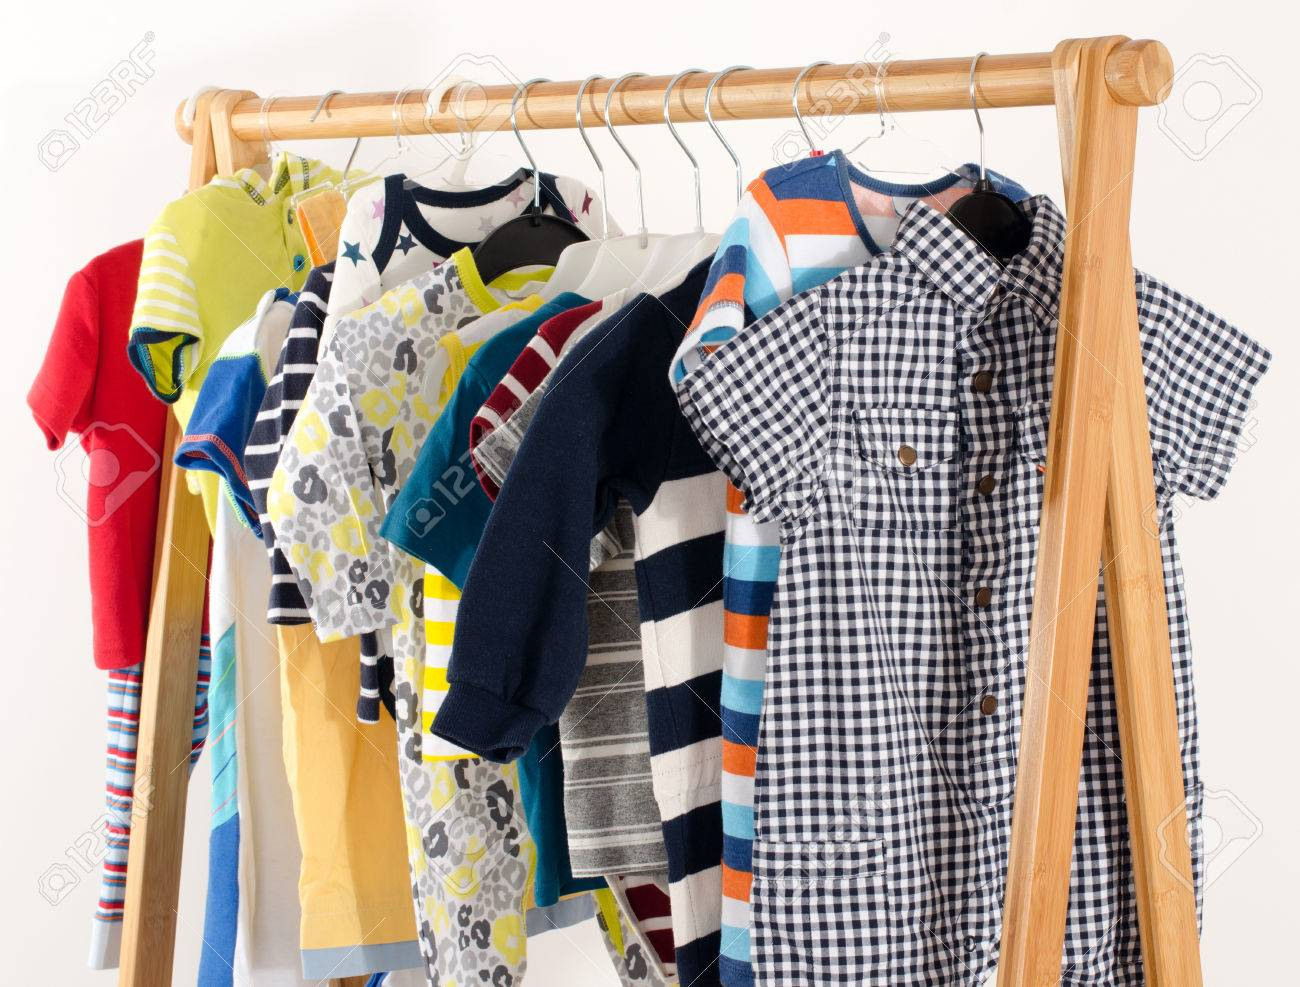 0f1d20460 Dressing closet with clothes arranged on hangers.Colorful wardrobe..